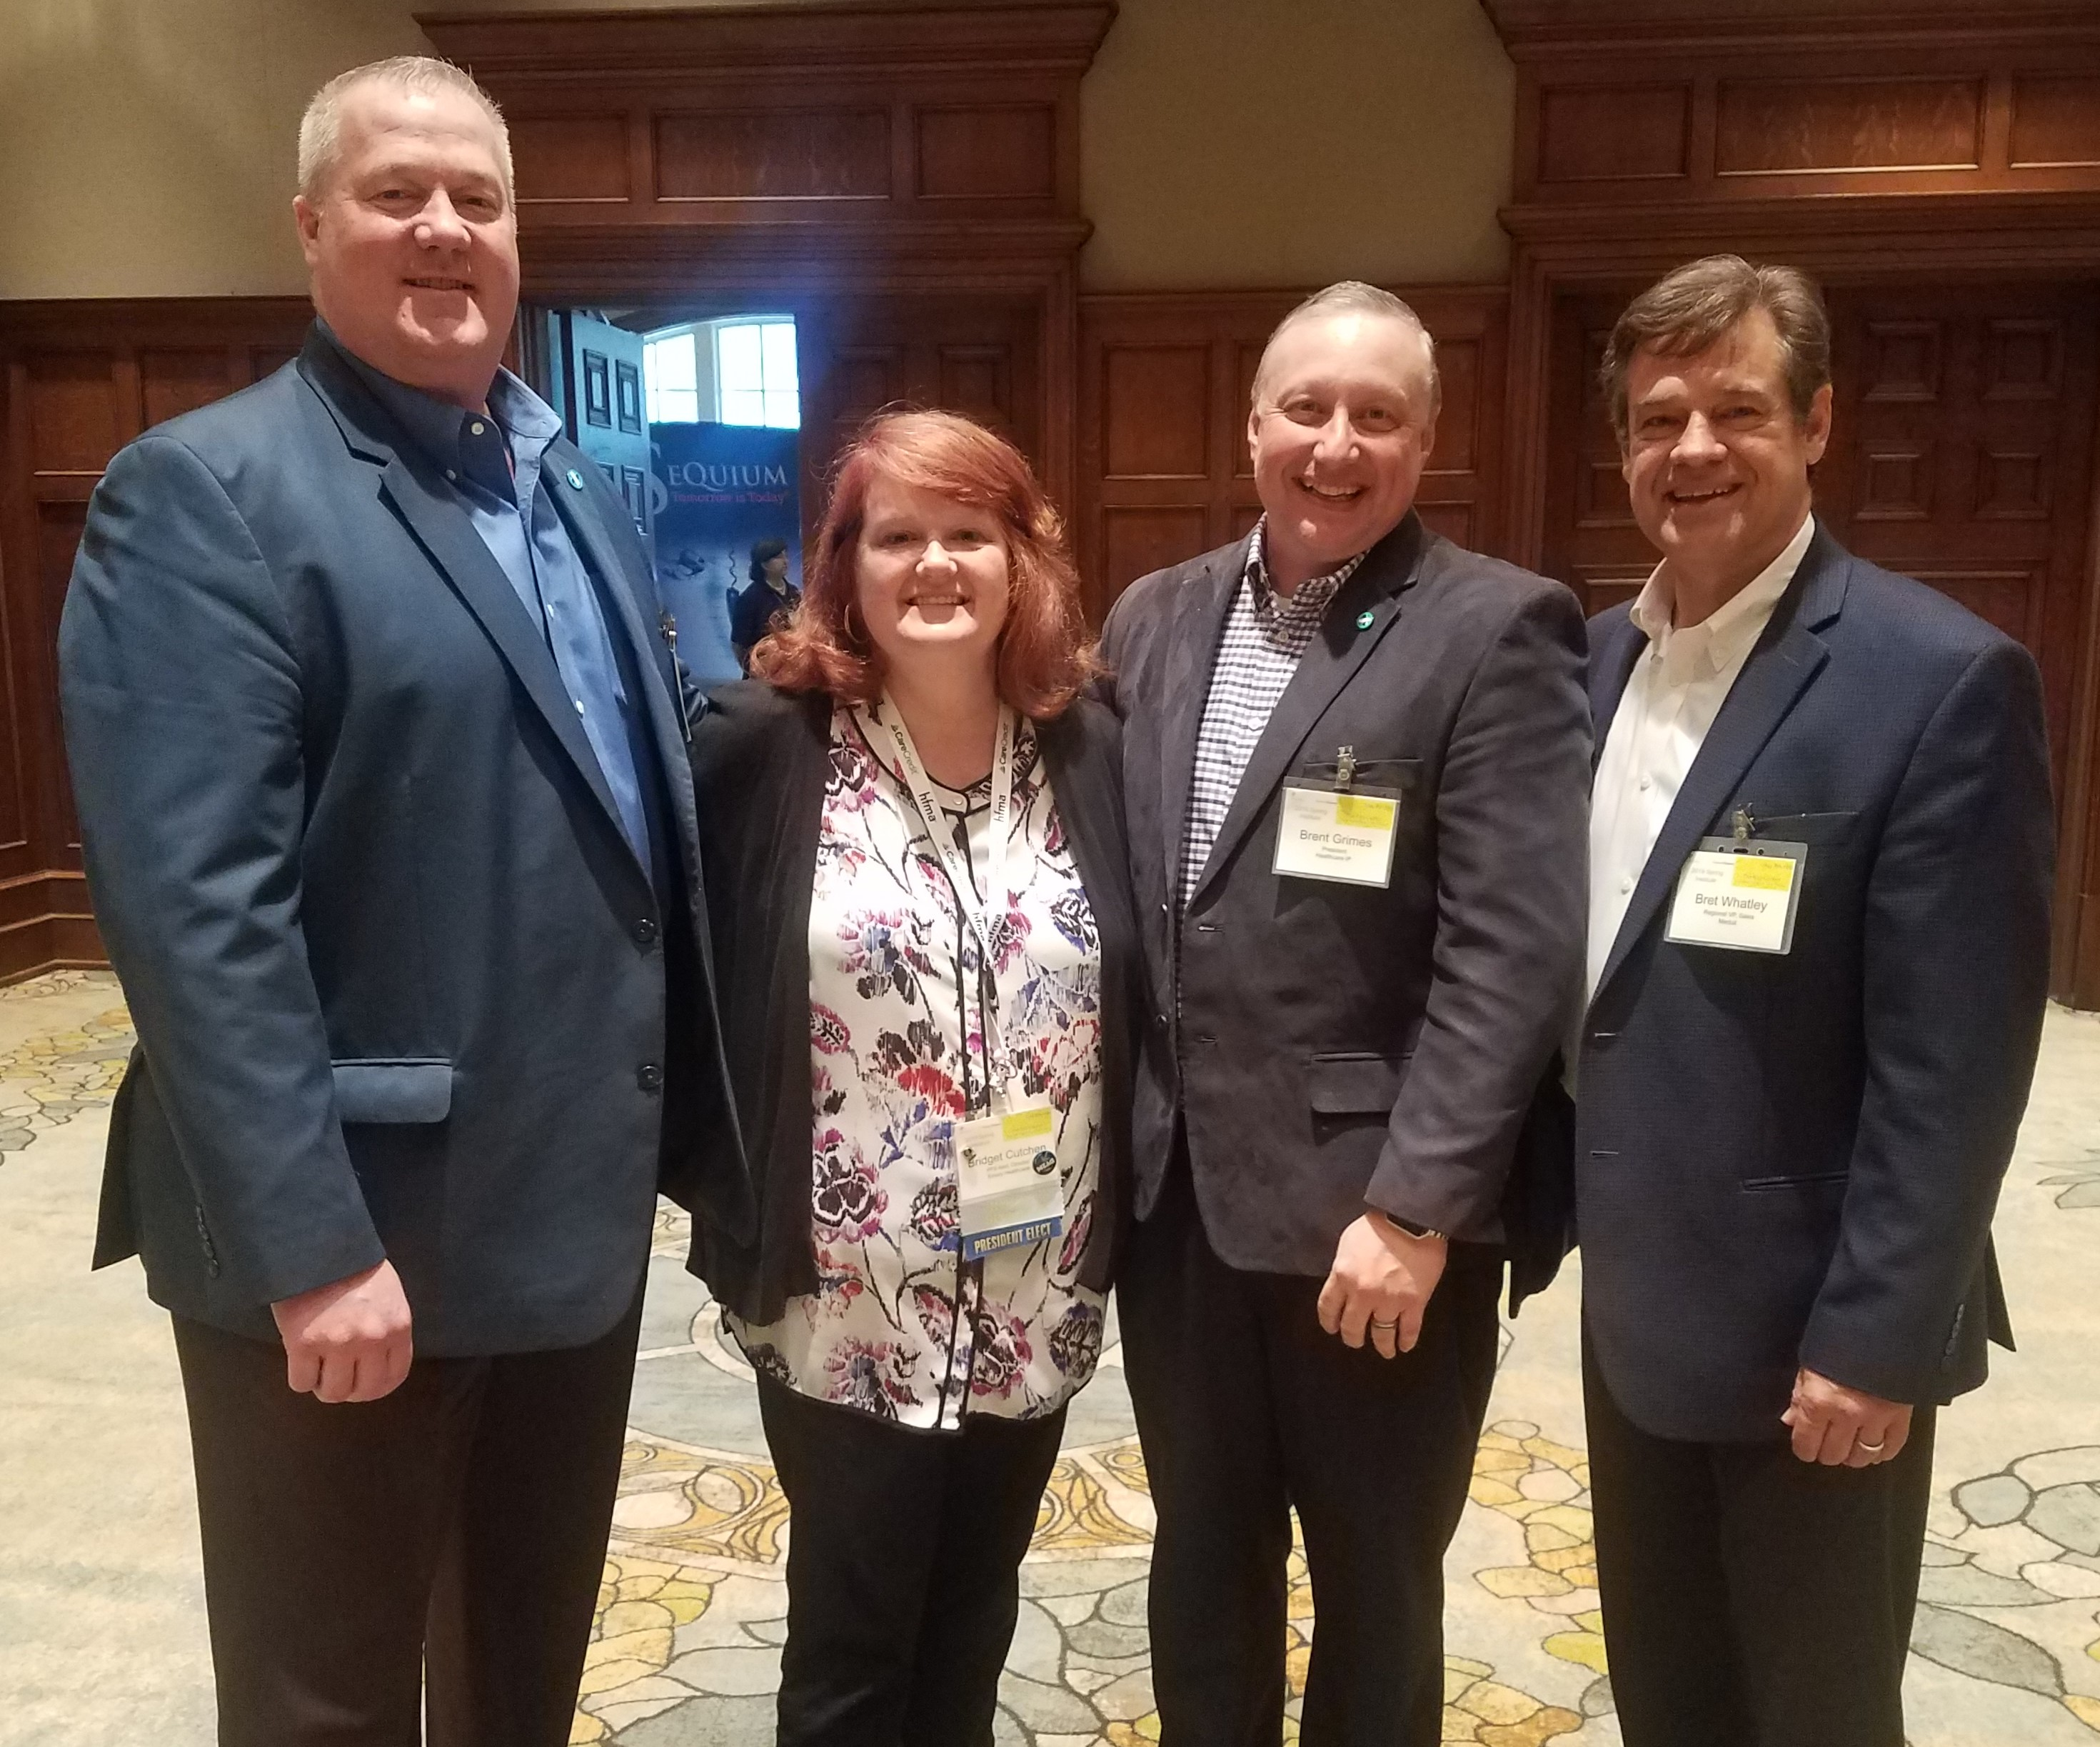 Jim Child Bridget Cutchen Brent Grimes Bret Whatley - GA HFMA Sping  2019